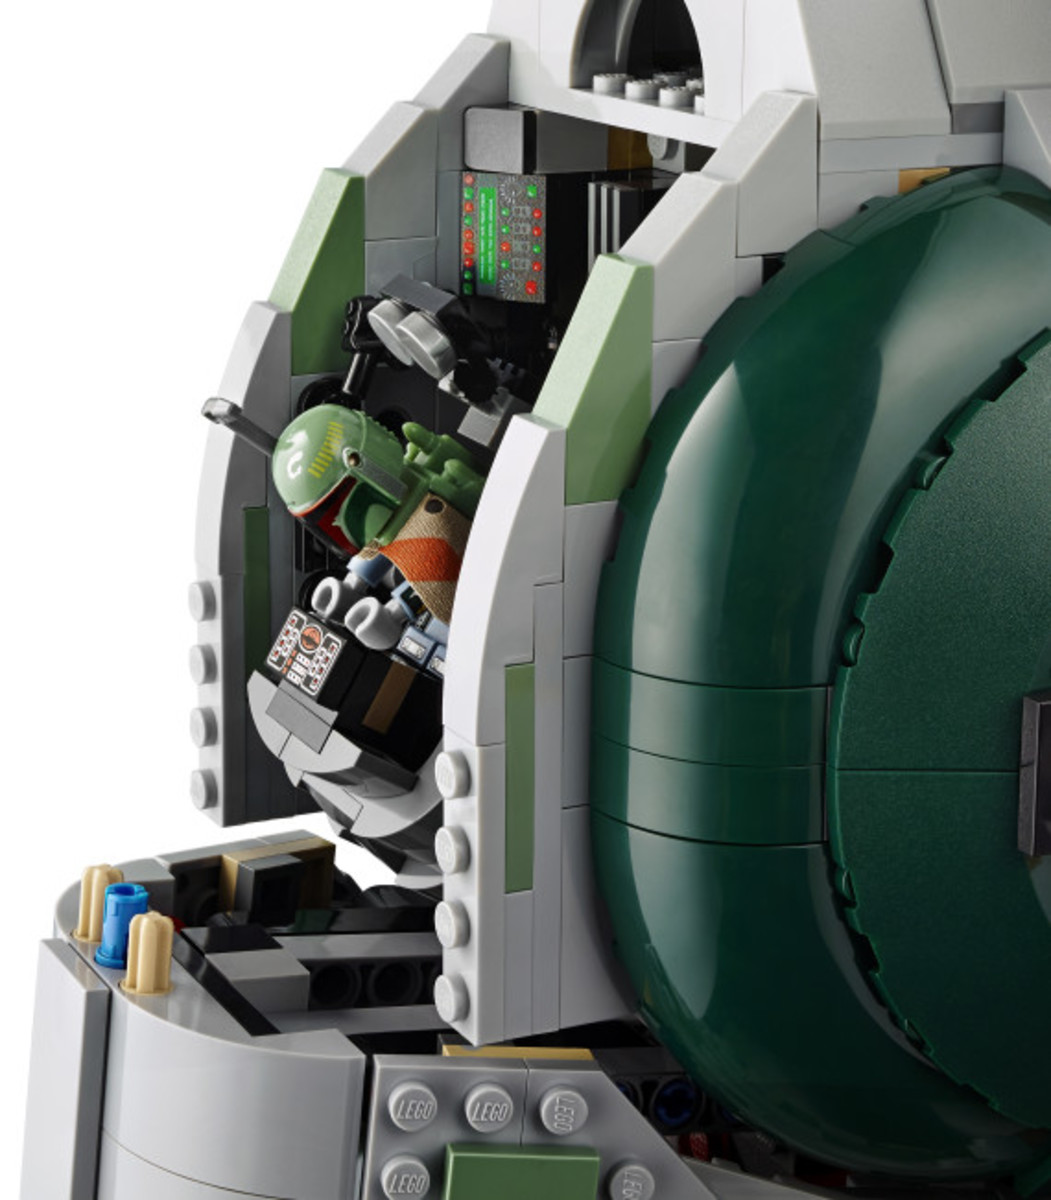 Star Wars x LEGO Ultimate Collector's Series: Boba Fett's Slave I Kit | Release Info - 15